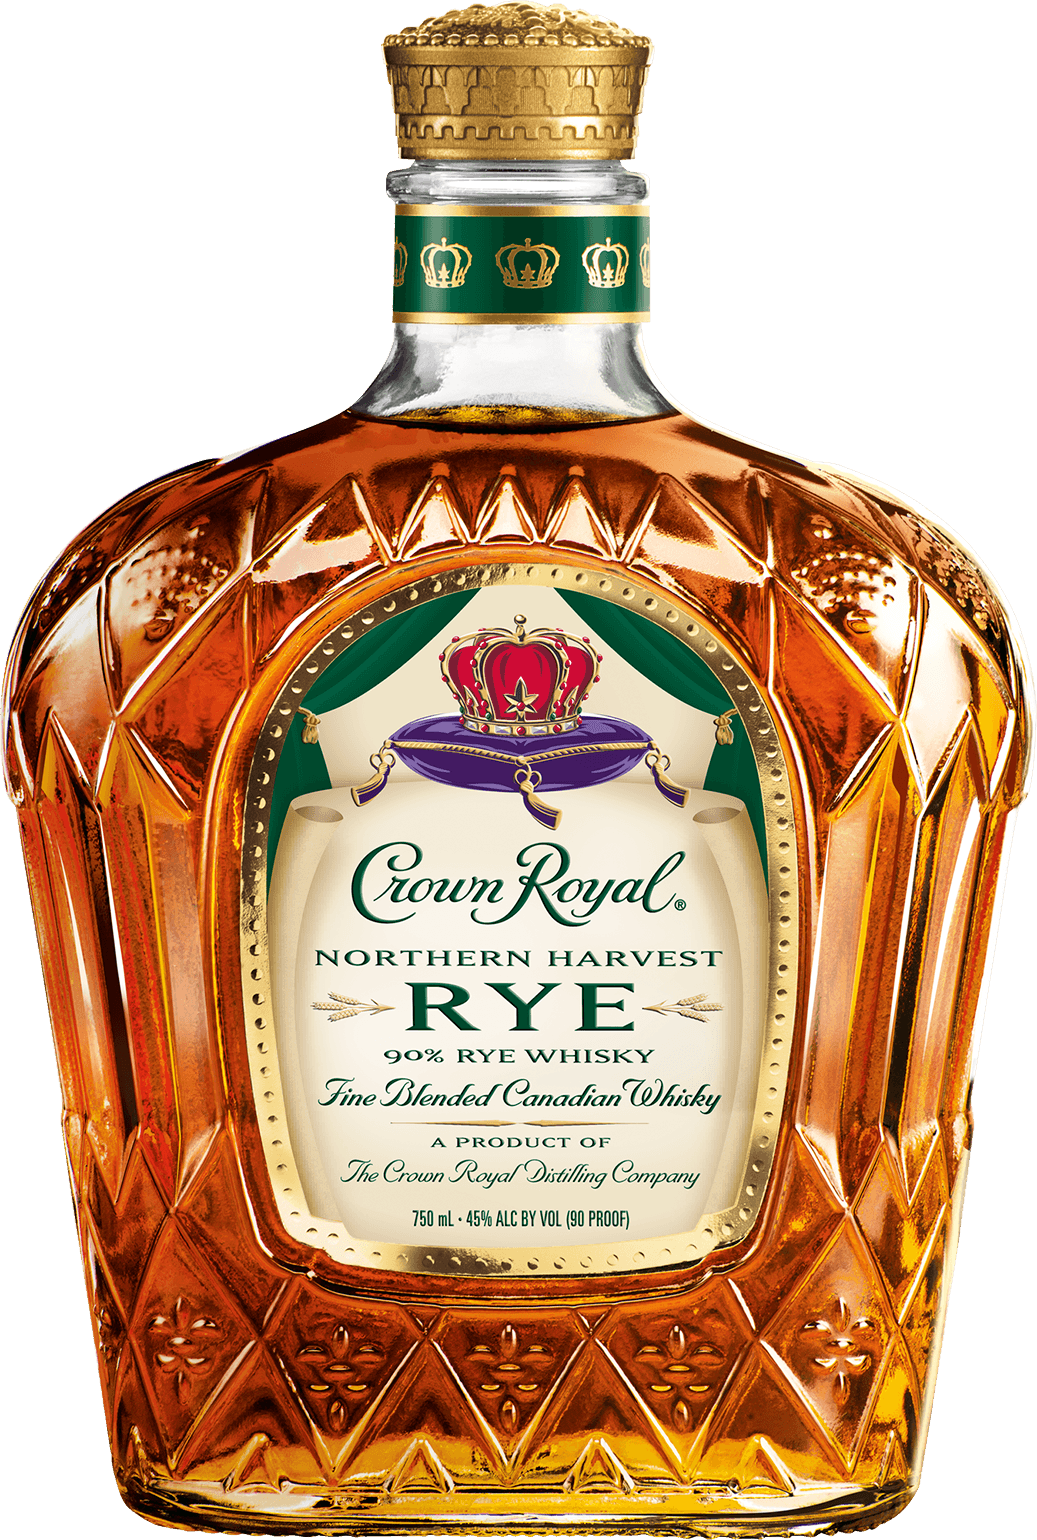 Crown Royal Northern Harvest Rye Whisky Bottle - Canadian Whisky - Crown Royal